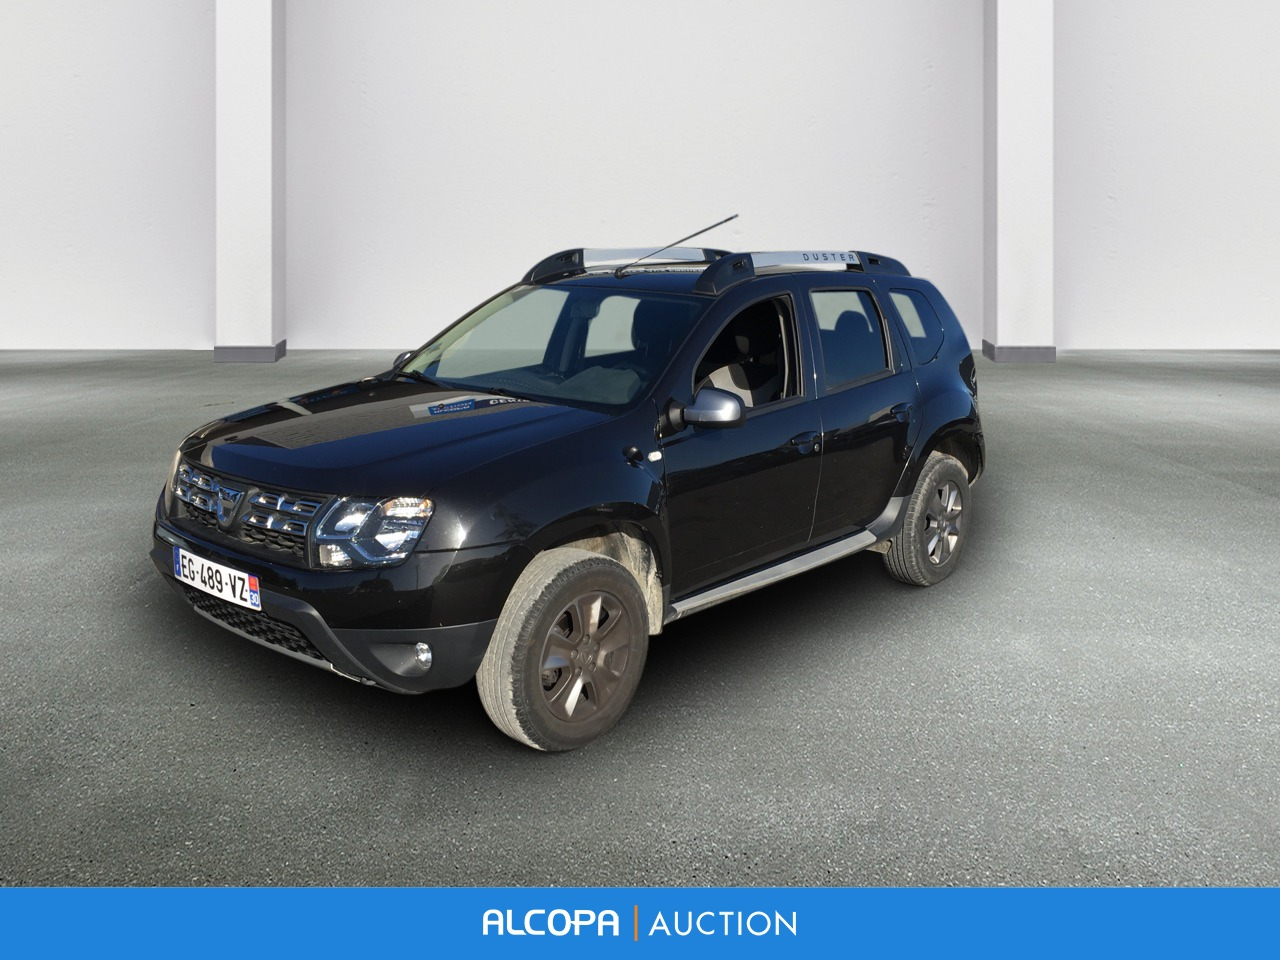 dacia duster duster dci 110 4x2 prestige edition 2016 marseille alcopa auction. Black Bedroom Furniture Sets. Home Design Ideas